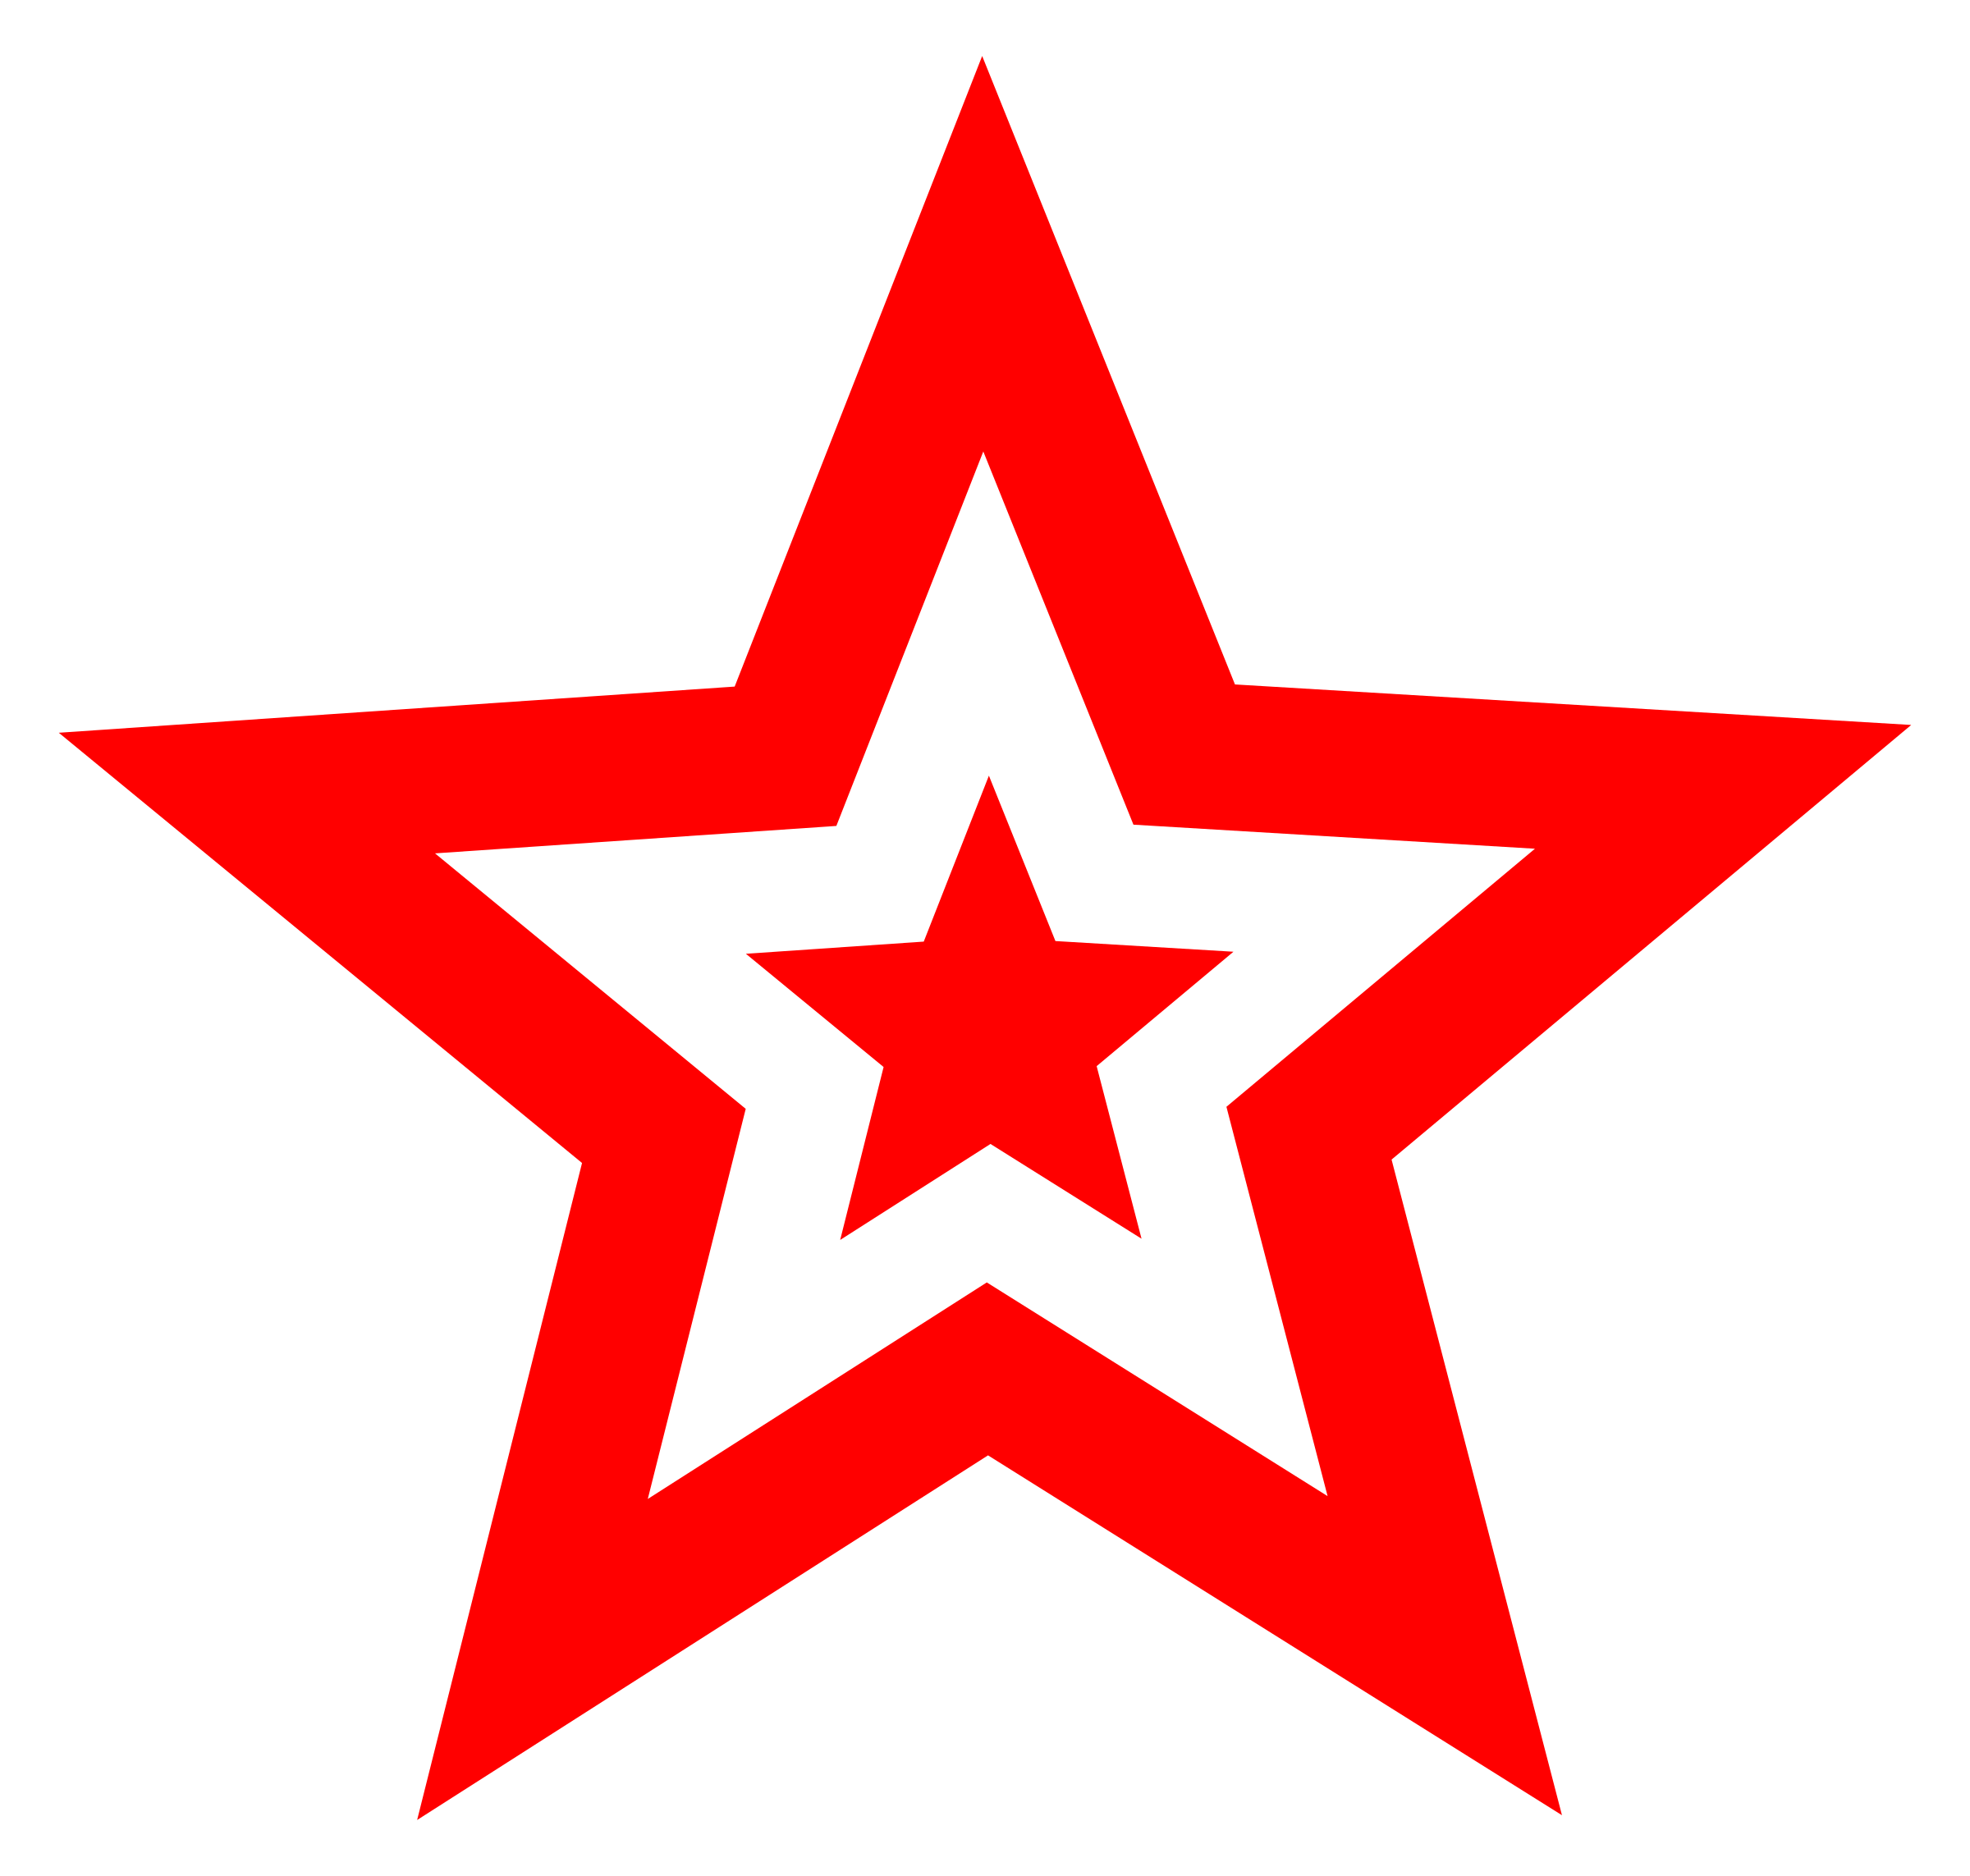 Star in icons free. Red stars png clip art transparent library